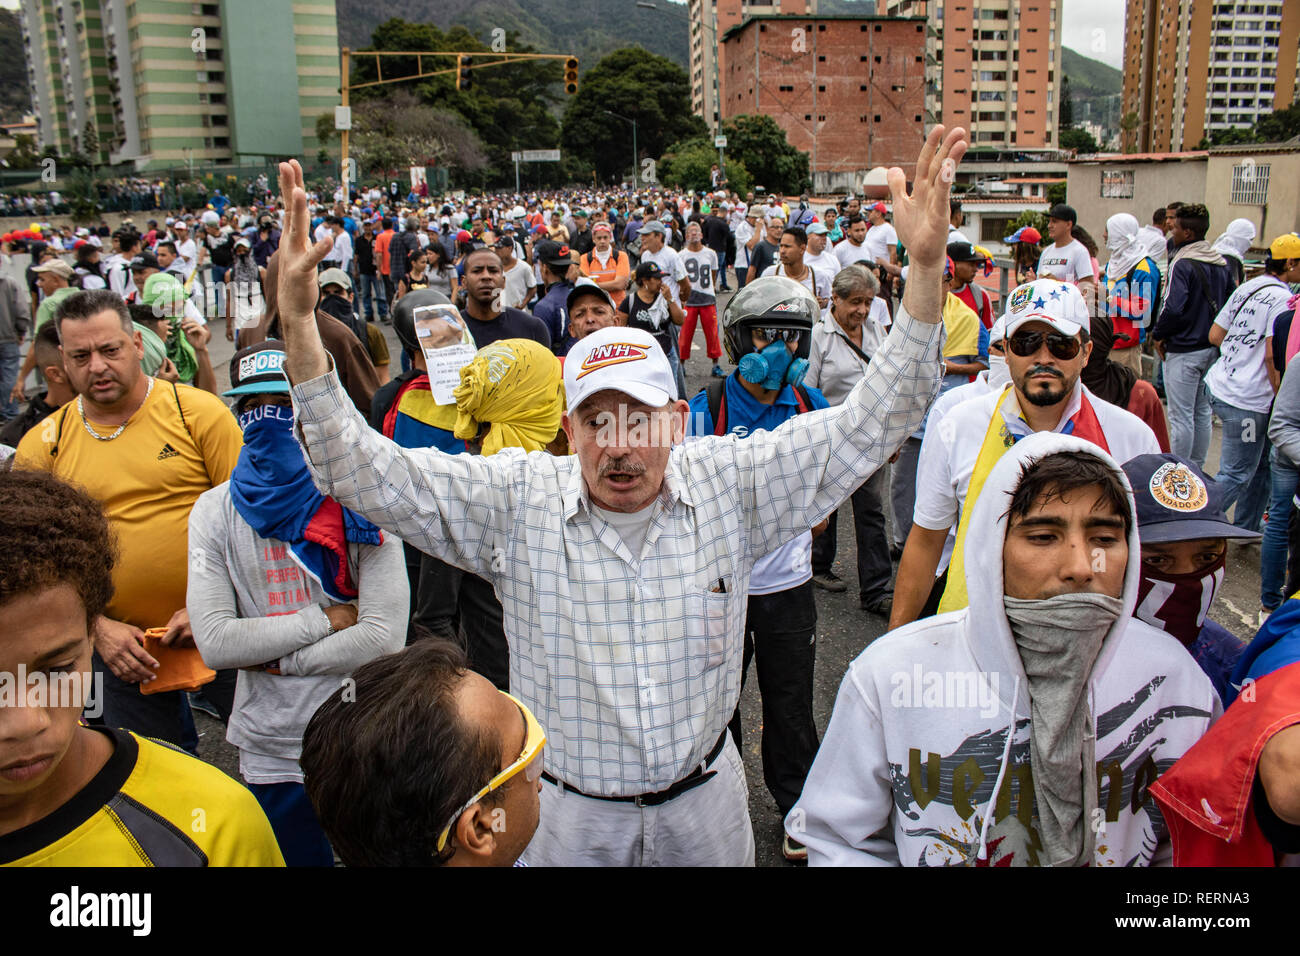 Caracas, Venezuela. 23rd Jan, 2019. A man raises his arms in a protest against the government of President Maduro. In the midst of the escalating political crisis in Venezuela, many people took to the streets. Many states, international organizations and the opposition no longer recognize Maduro as a legitimate head of state. According to observers, his re-election last year did not take place under free and fair conditions. Credit: Rayner Pena/dpa/Alamy Live News - Stock Image